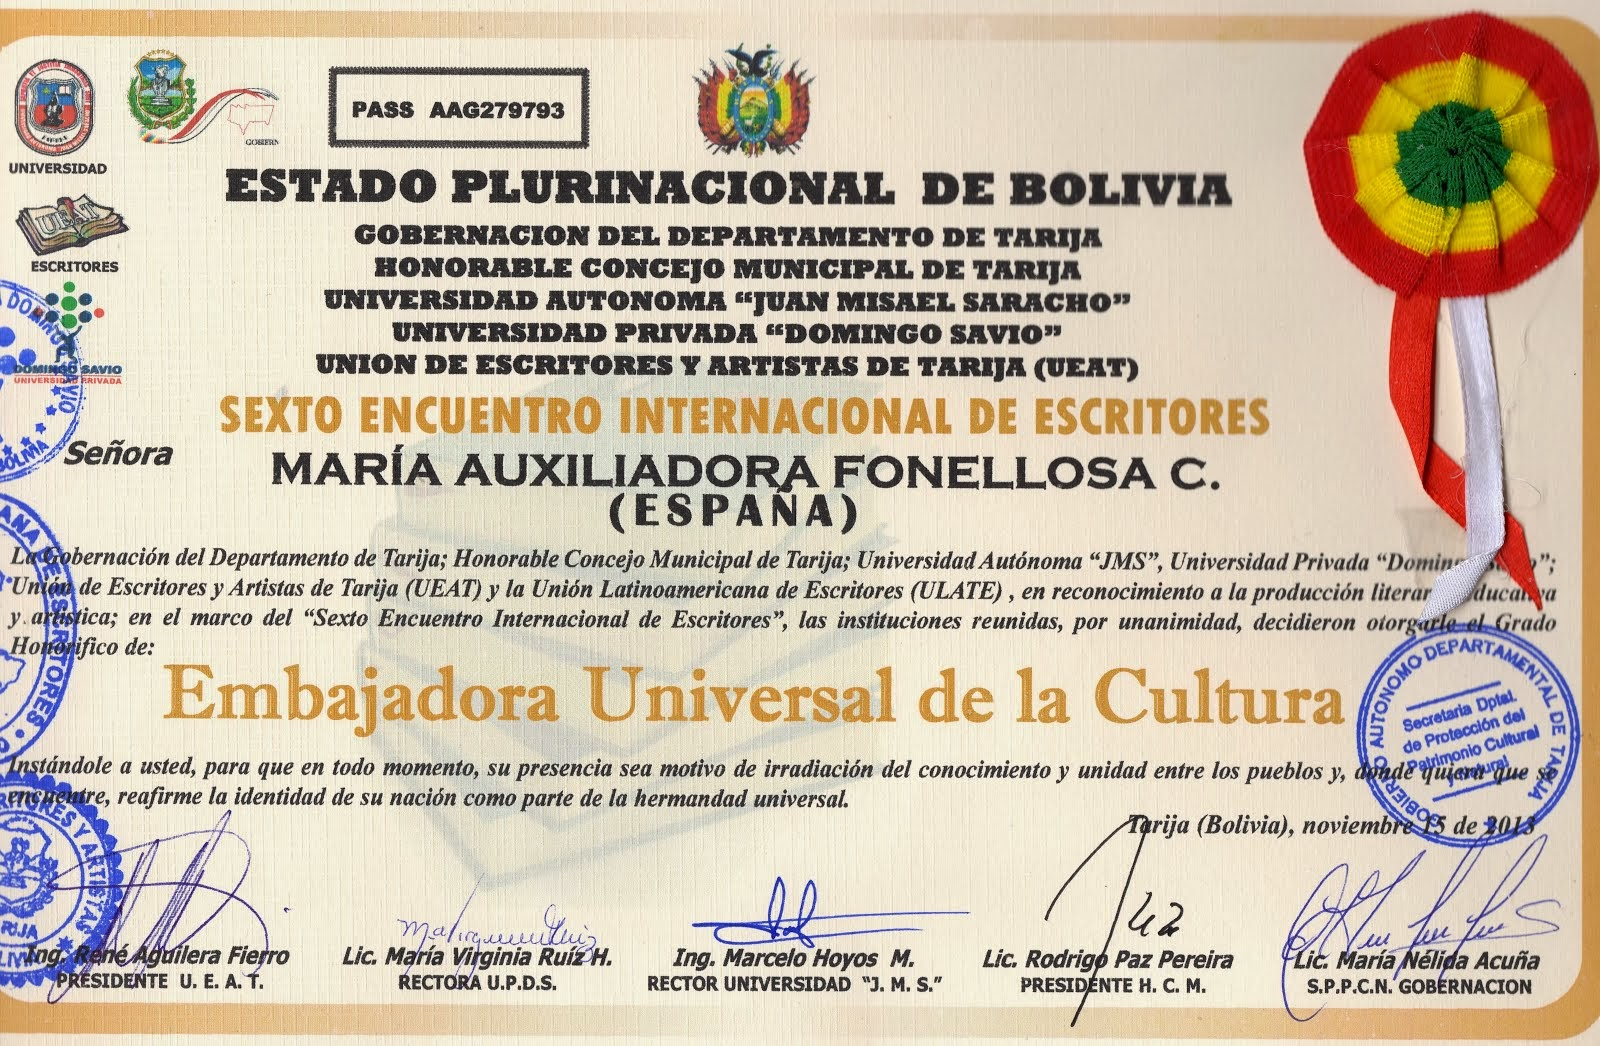 EMBAJADORA UNIVERSAL DE LA CULTURA